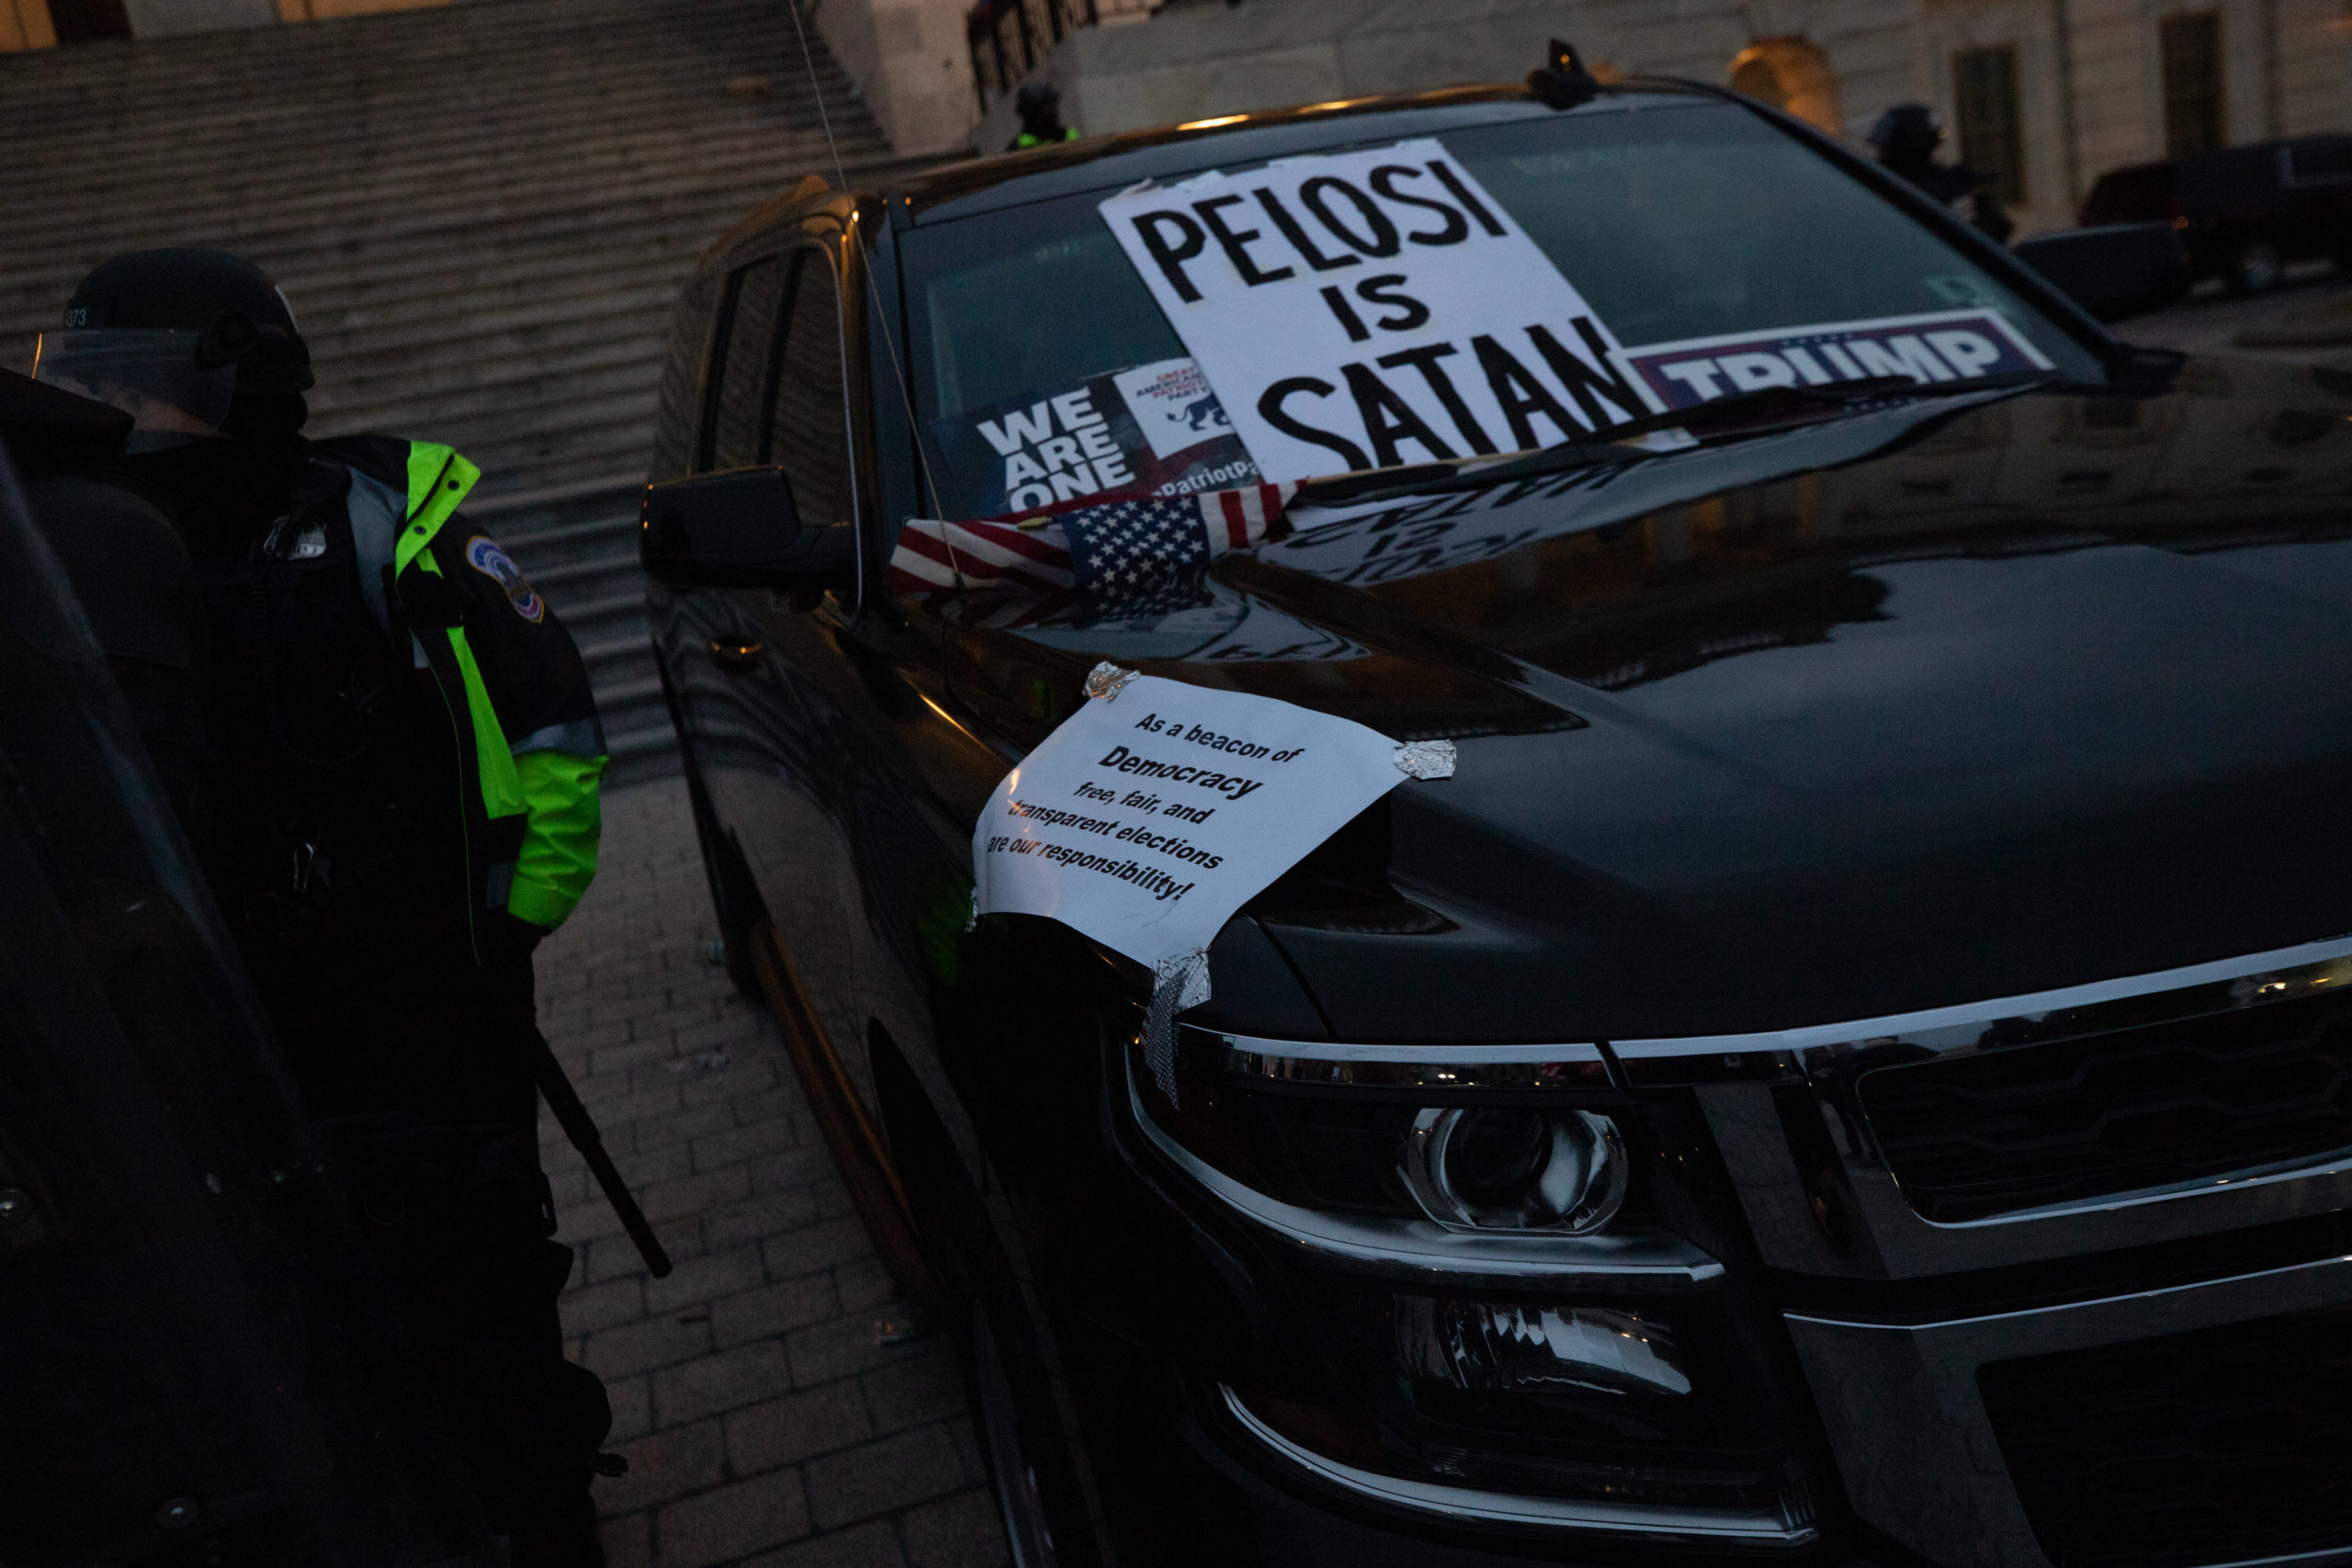 A sign calling Pelosi satan and an American flag were draped over a government vehicle in Washington, D.C. on Jan. 6, 2021. (Kaylee Greenlee - Daily Caller News Foundation)